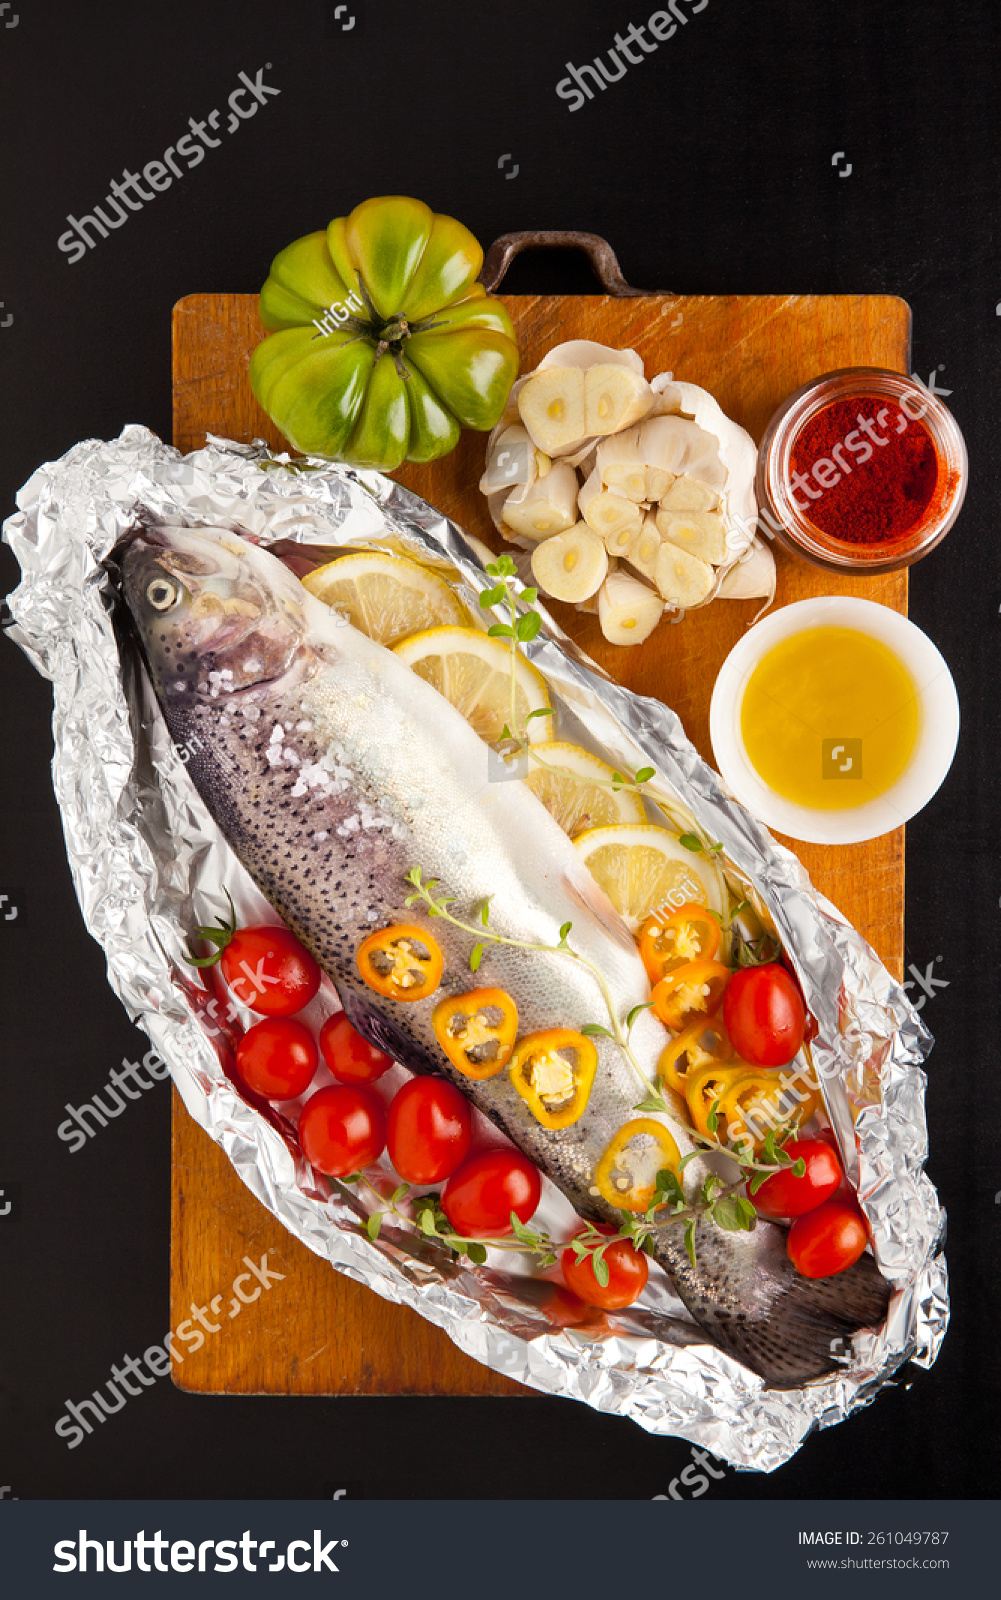 Raw fish vegetables on wooden board stock photo 261049787 for Fish with vegetables